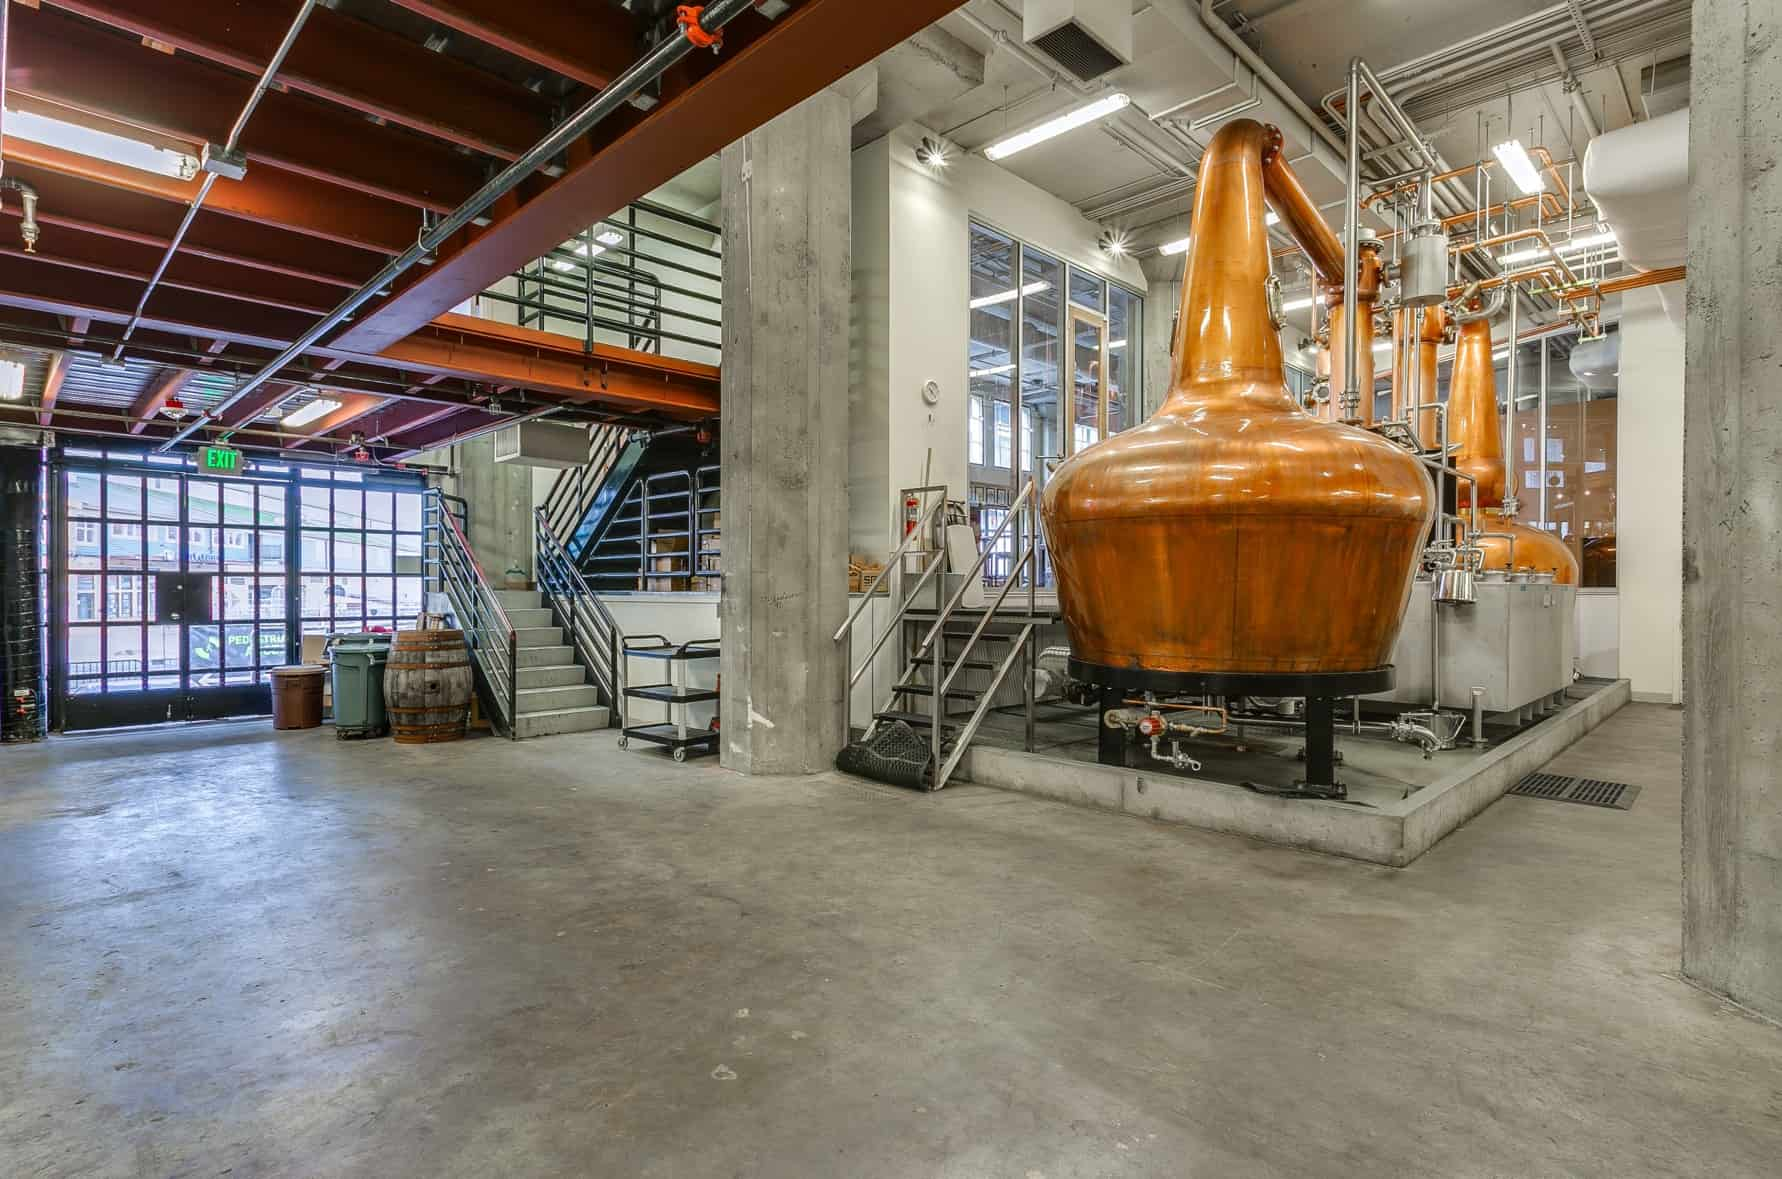 Urban distillery event space